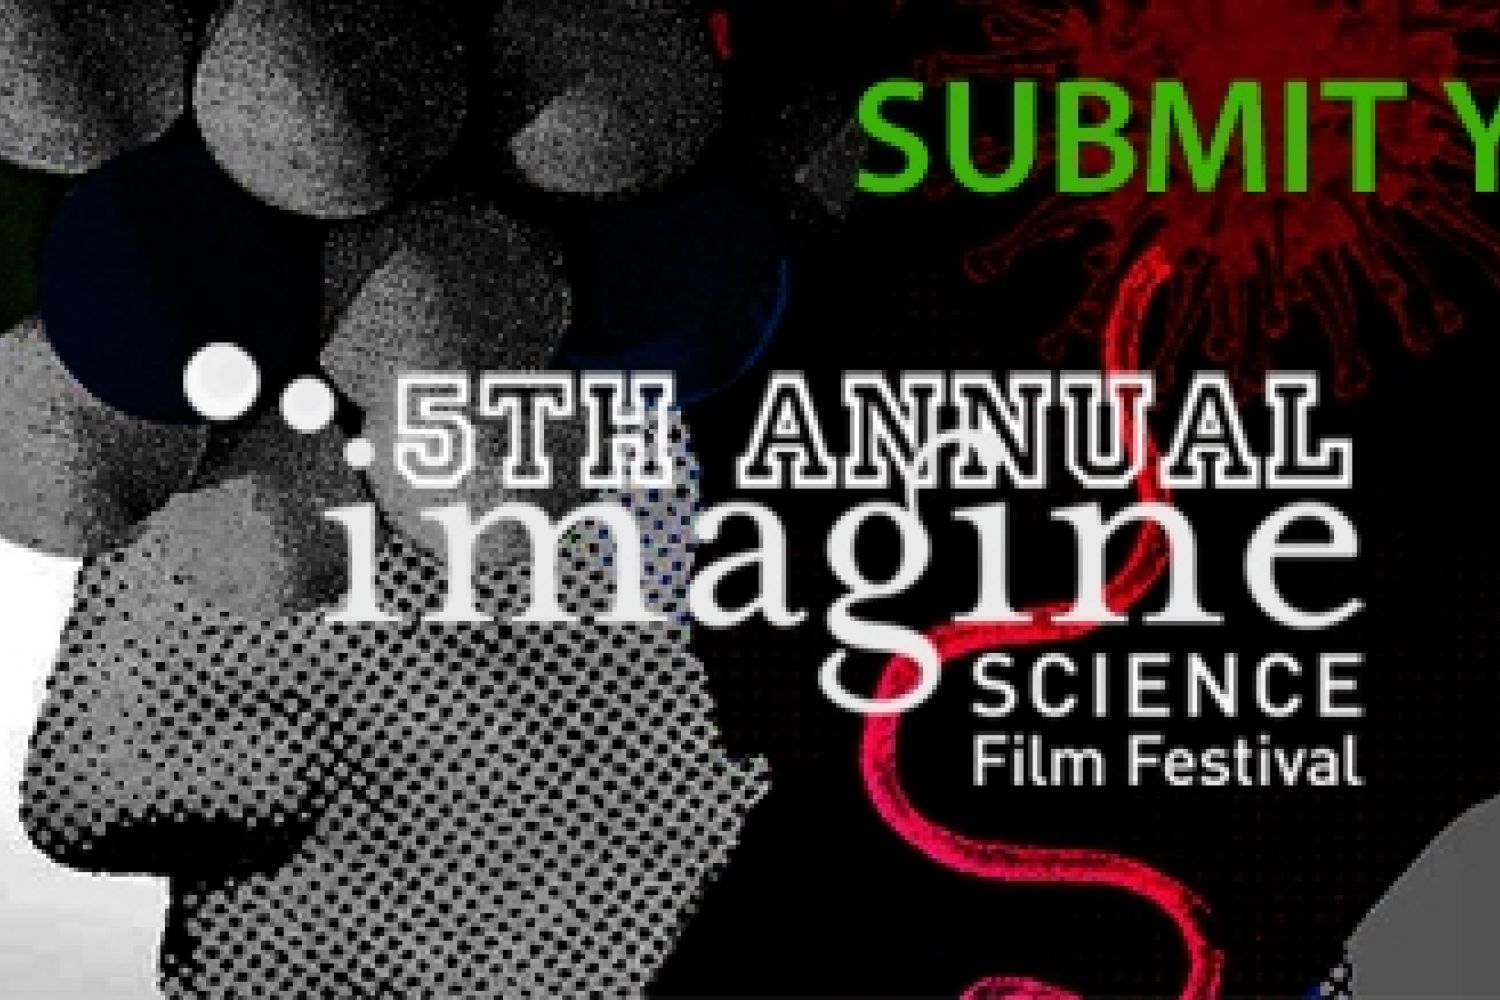 Imagine Science Film Festival in New York.